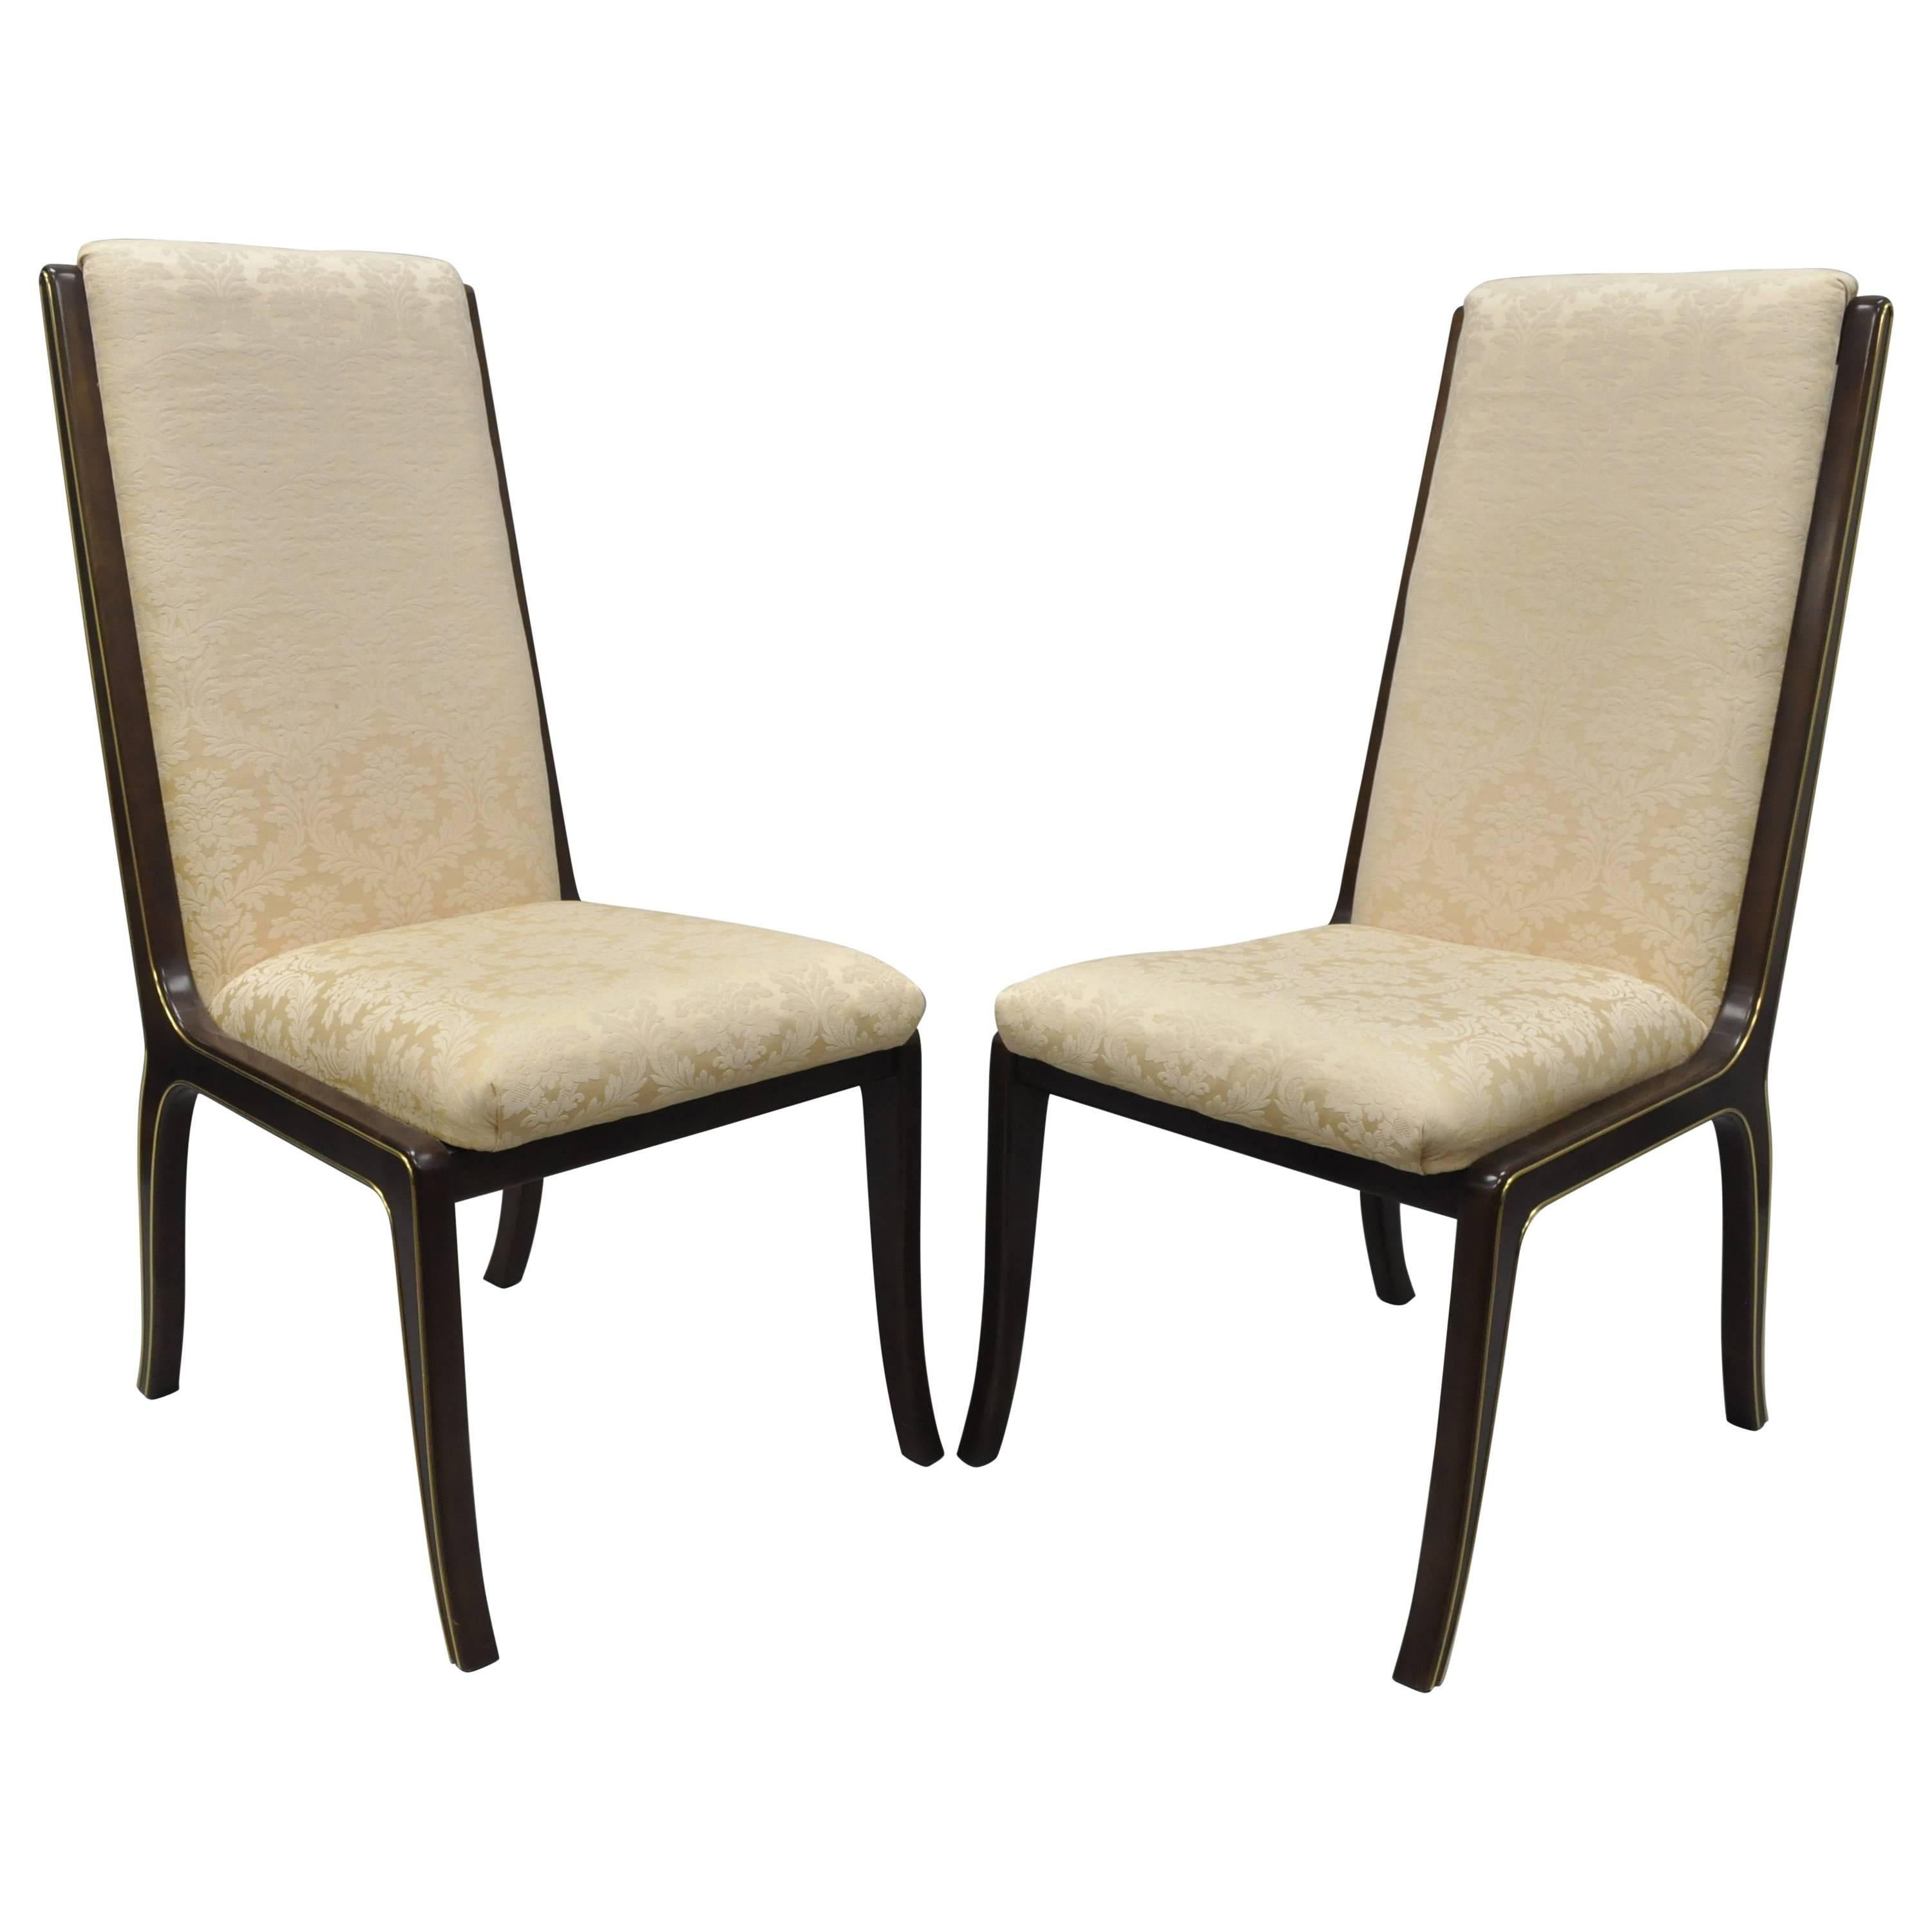 Mastercraft For Baker Brass Inlay Trim Dining Room Side Chairs, A Pair